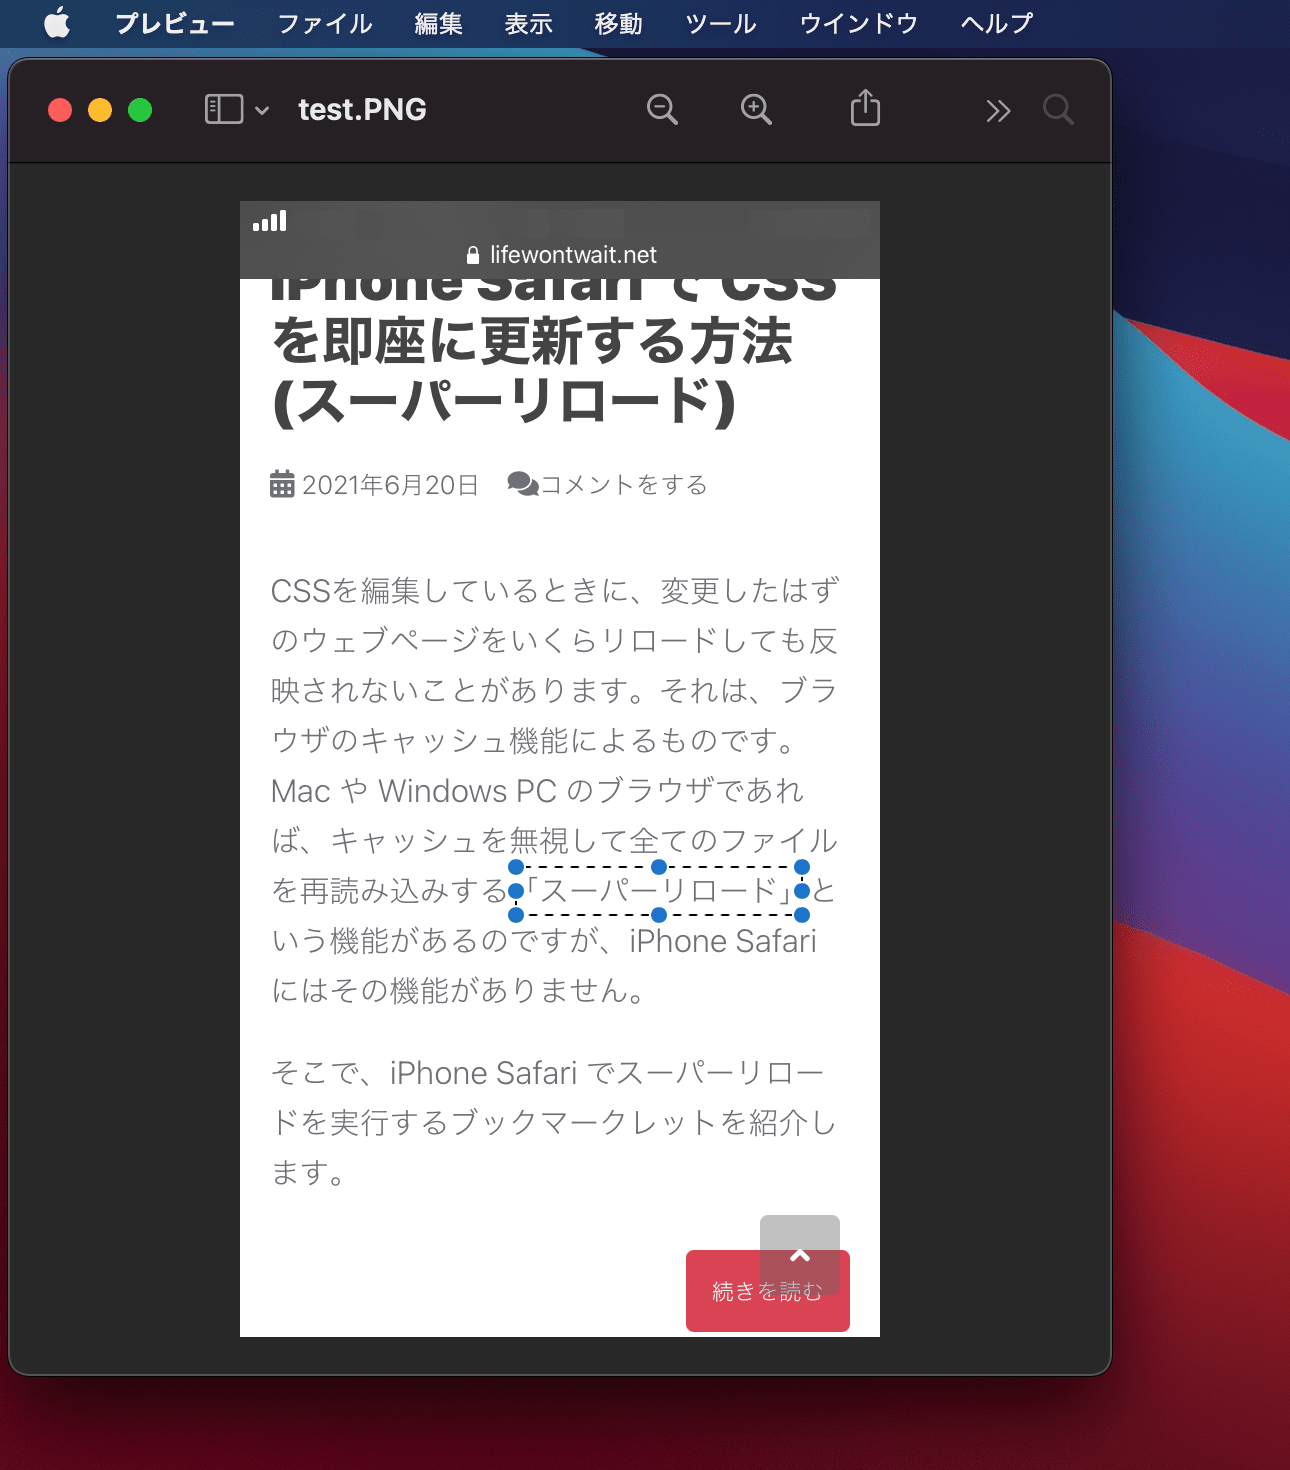 highlight-part-of-an-image-in-the-mac-preview-app_01